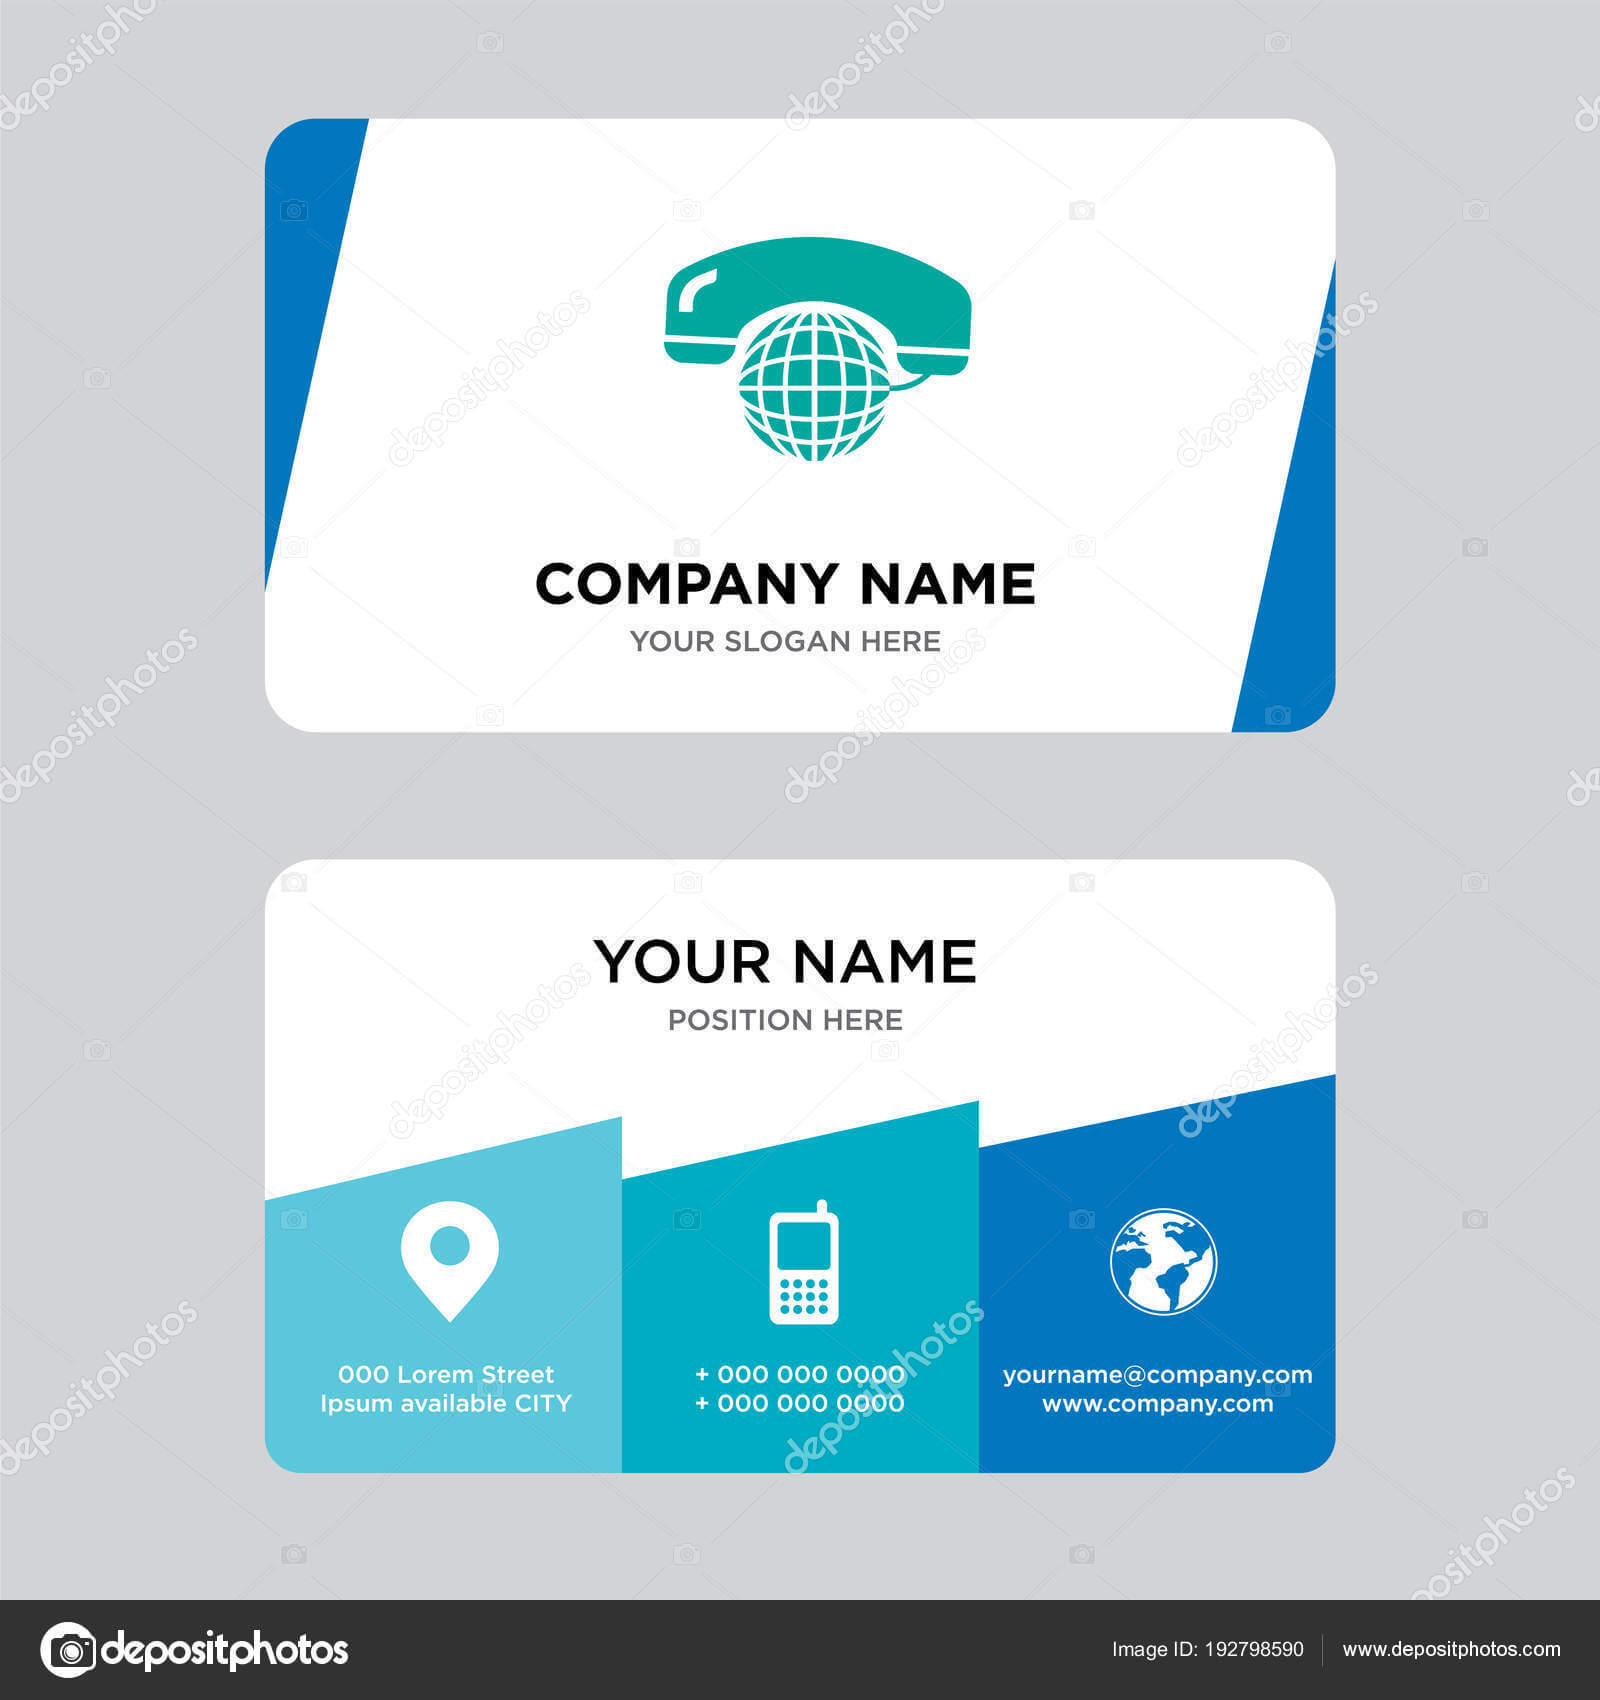 International Calling Service Business Card Design Template Pertaining To Template For Calling Card